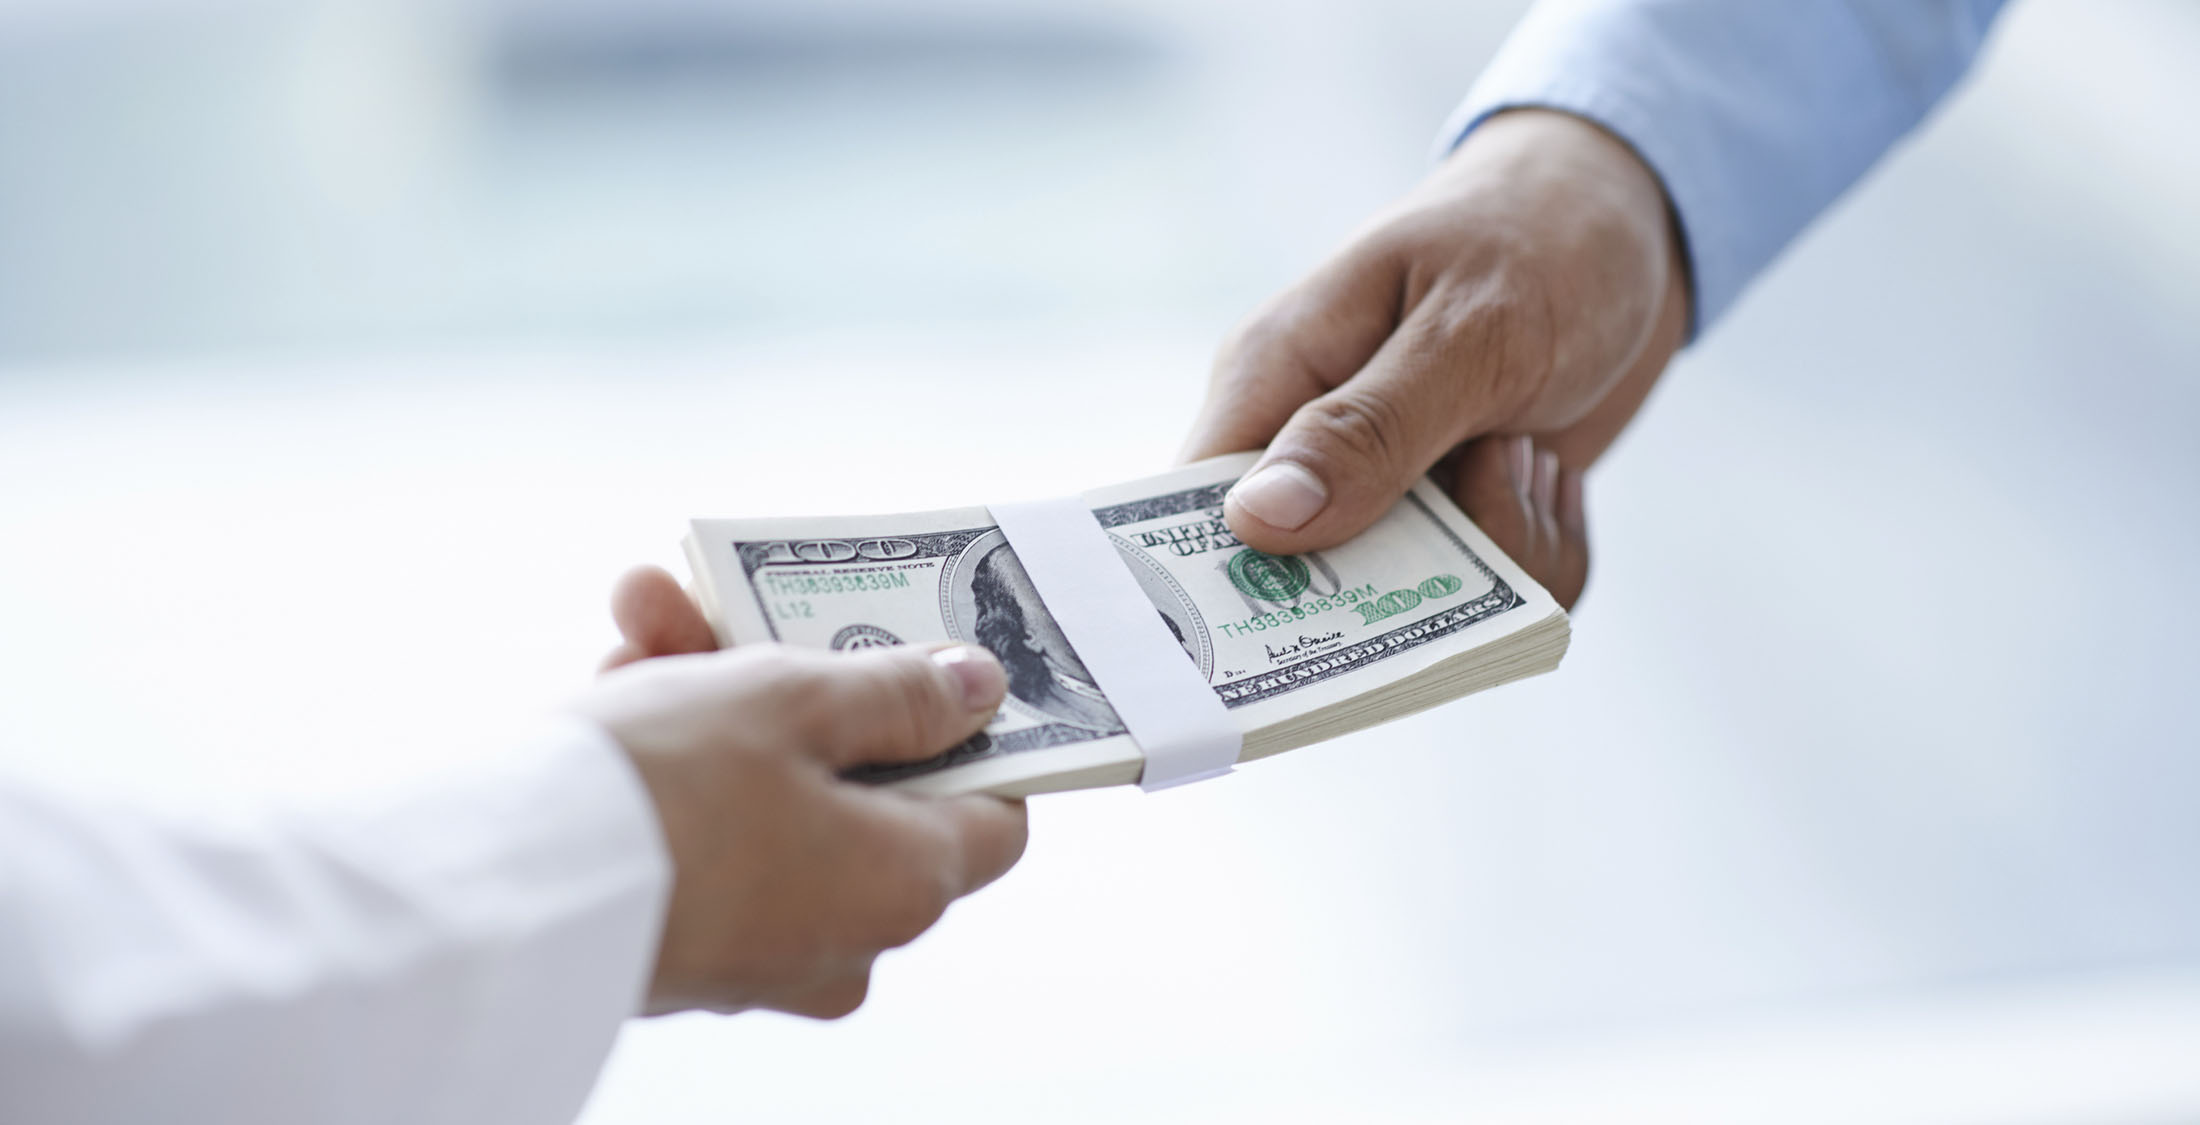 Hands of businessman giving money to his partner